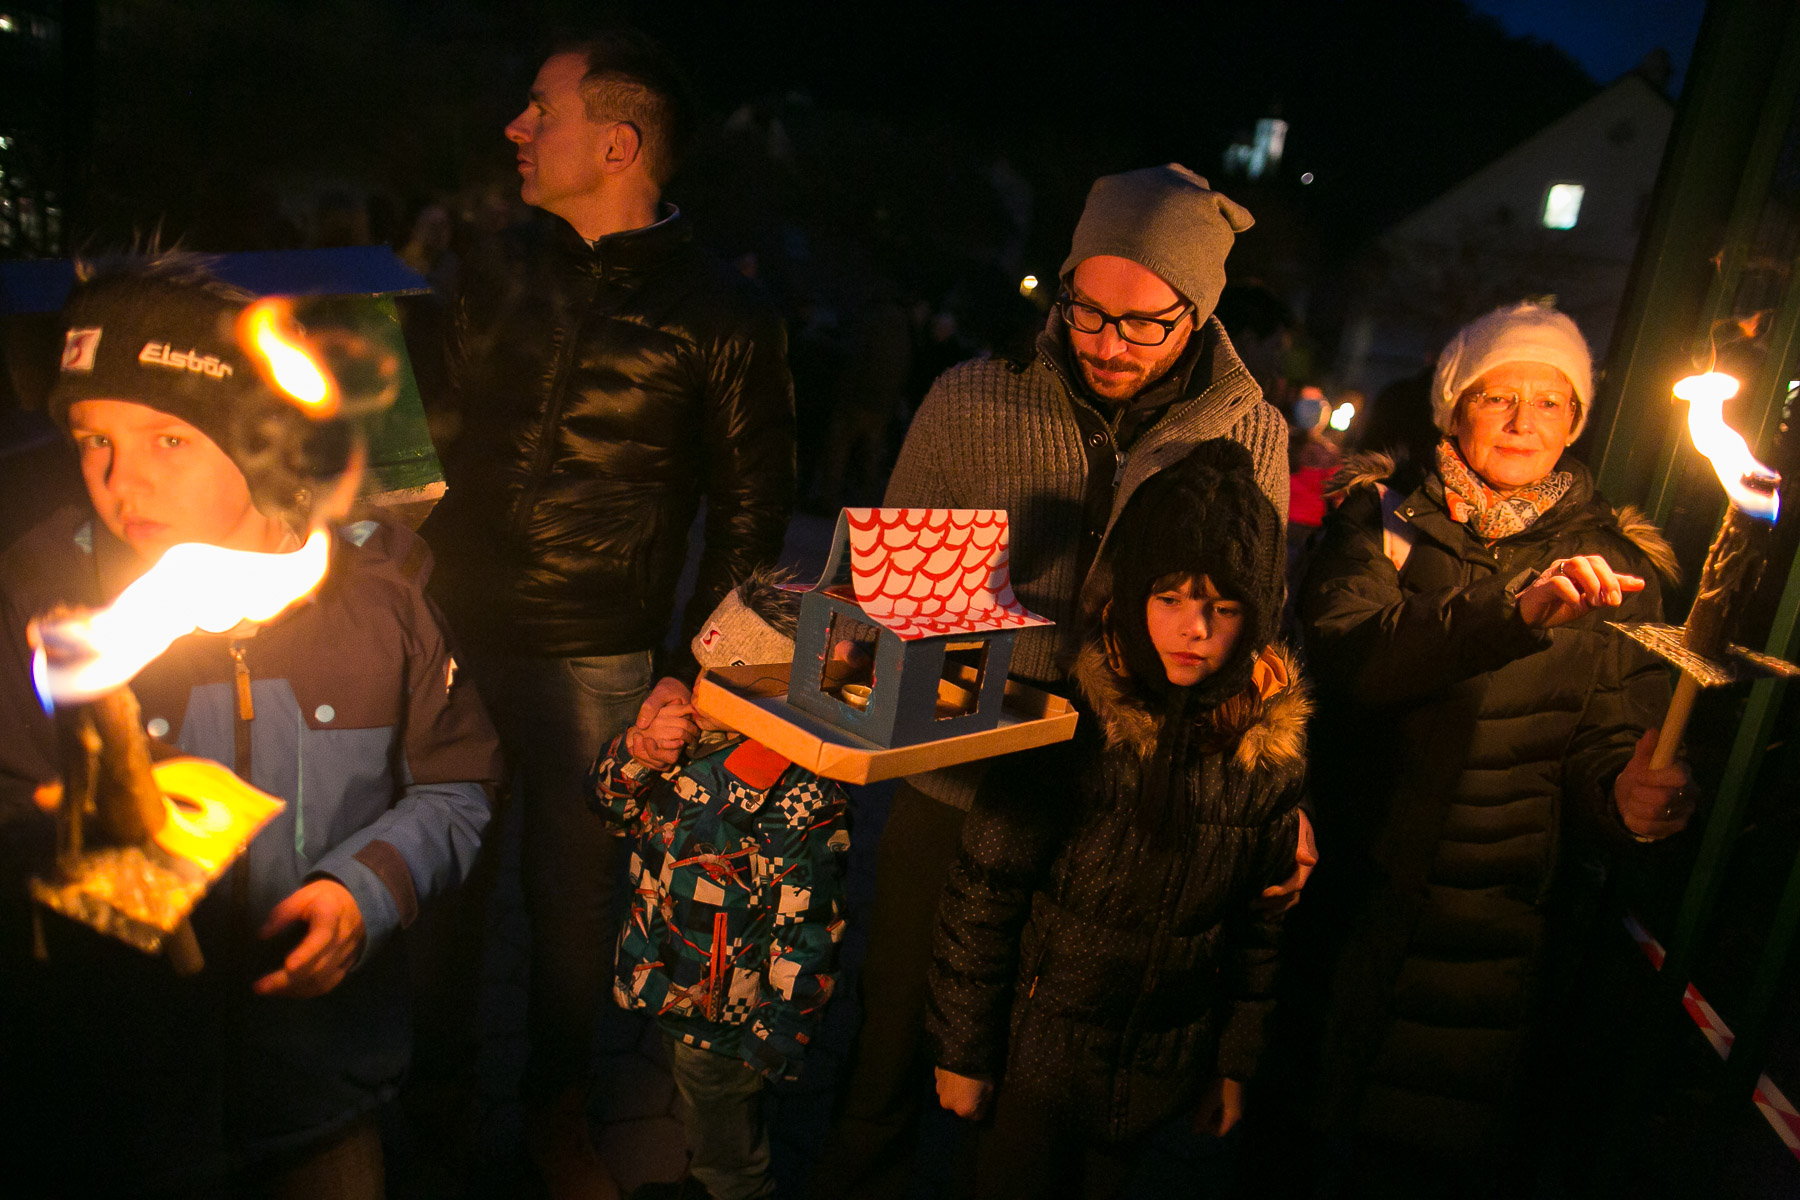 People attend the official presentation of model houses or {quote}gregorcki{quote} built by students of Trzic elementary school, during a traditional event called Light in the water, in which model houses and other objects are lit with candles and thrown in the water to symbolize the coming of spring, in Trzic, Slovenia, on March 11, 2016, the eve before St. Gregory's Day that was once the first day of spring. The students and their teachers built 750 model houses in an attempt to set a Guinness world record.